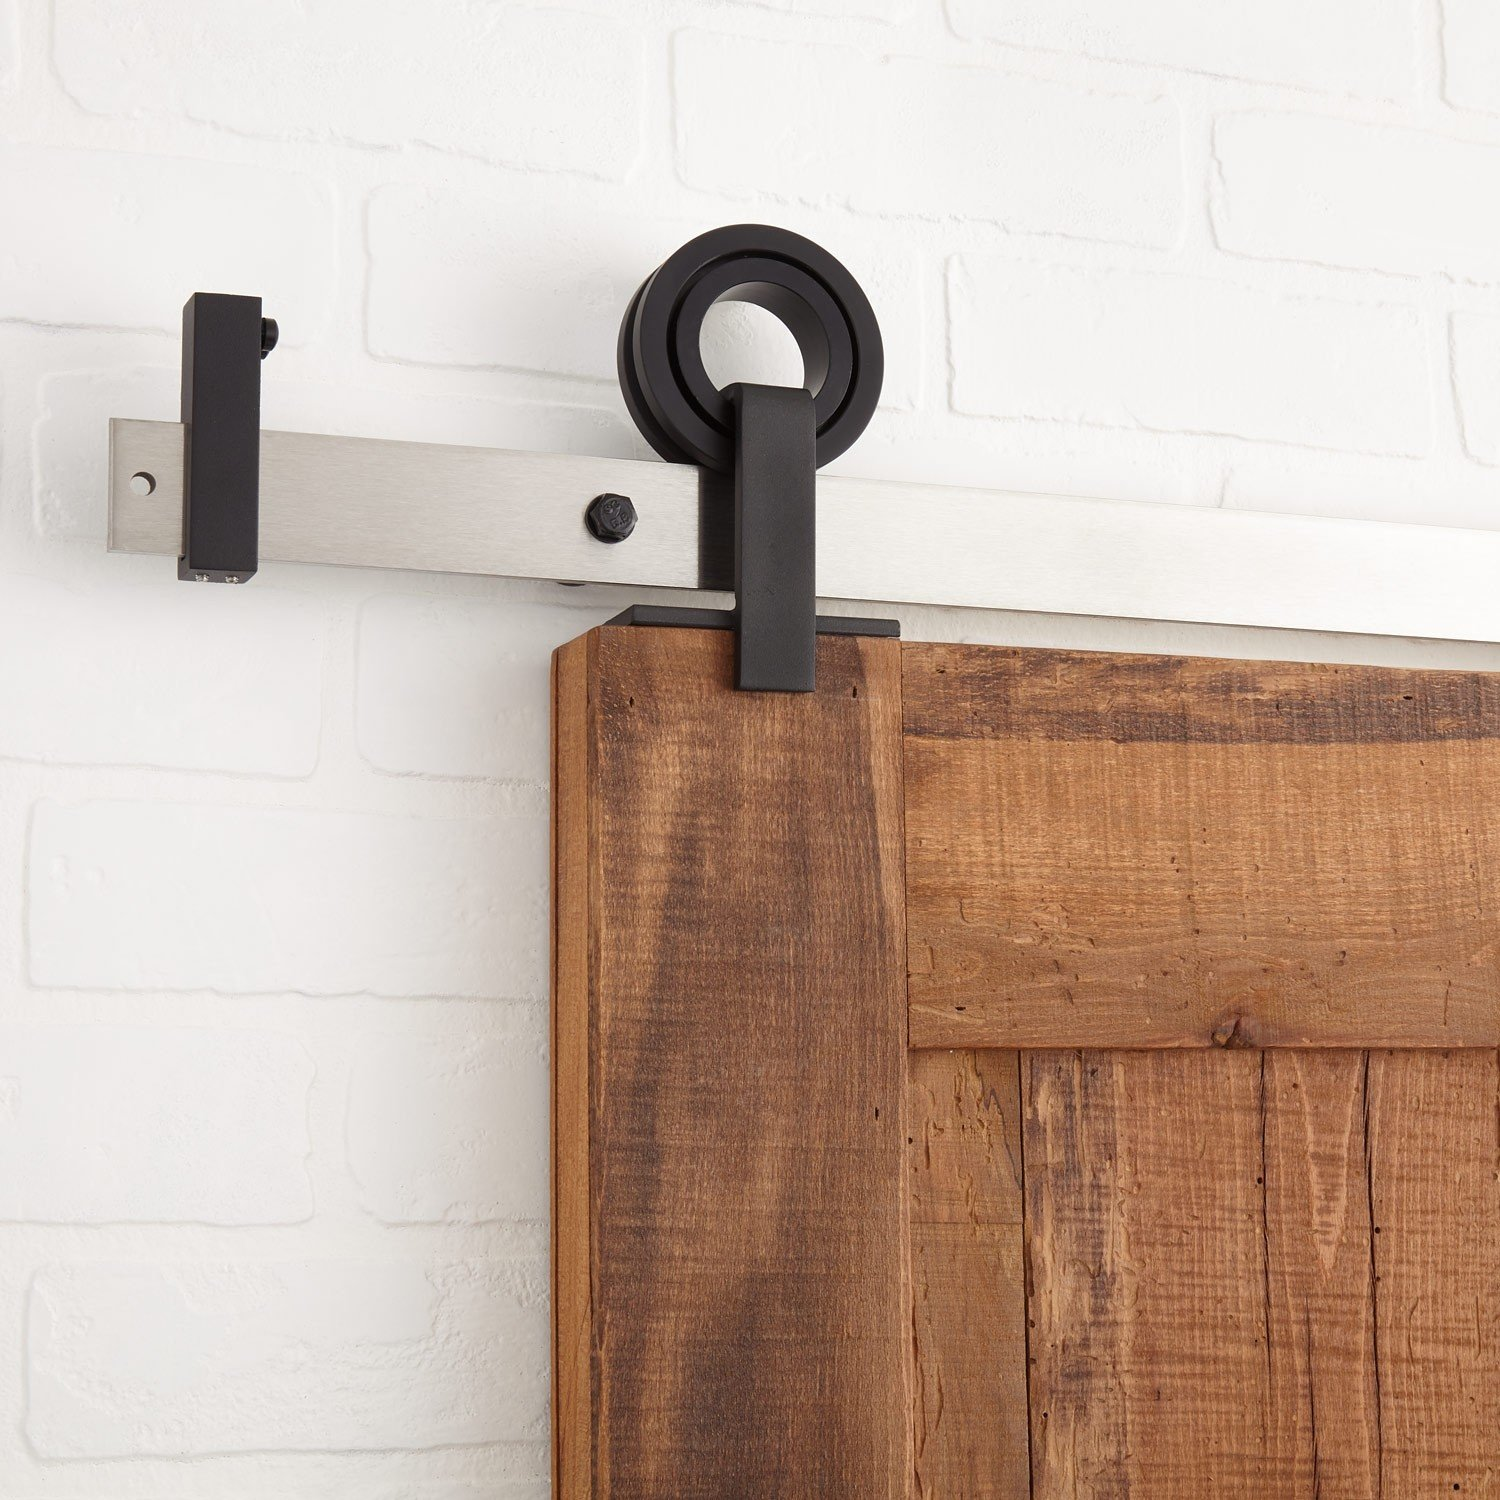 Naiture Paso Black Finish Barn Door Hardware With 7' Stainless Steel Finish Undrilled Track